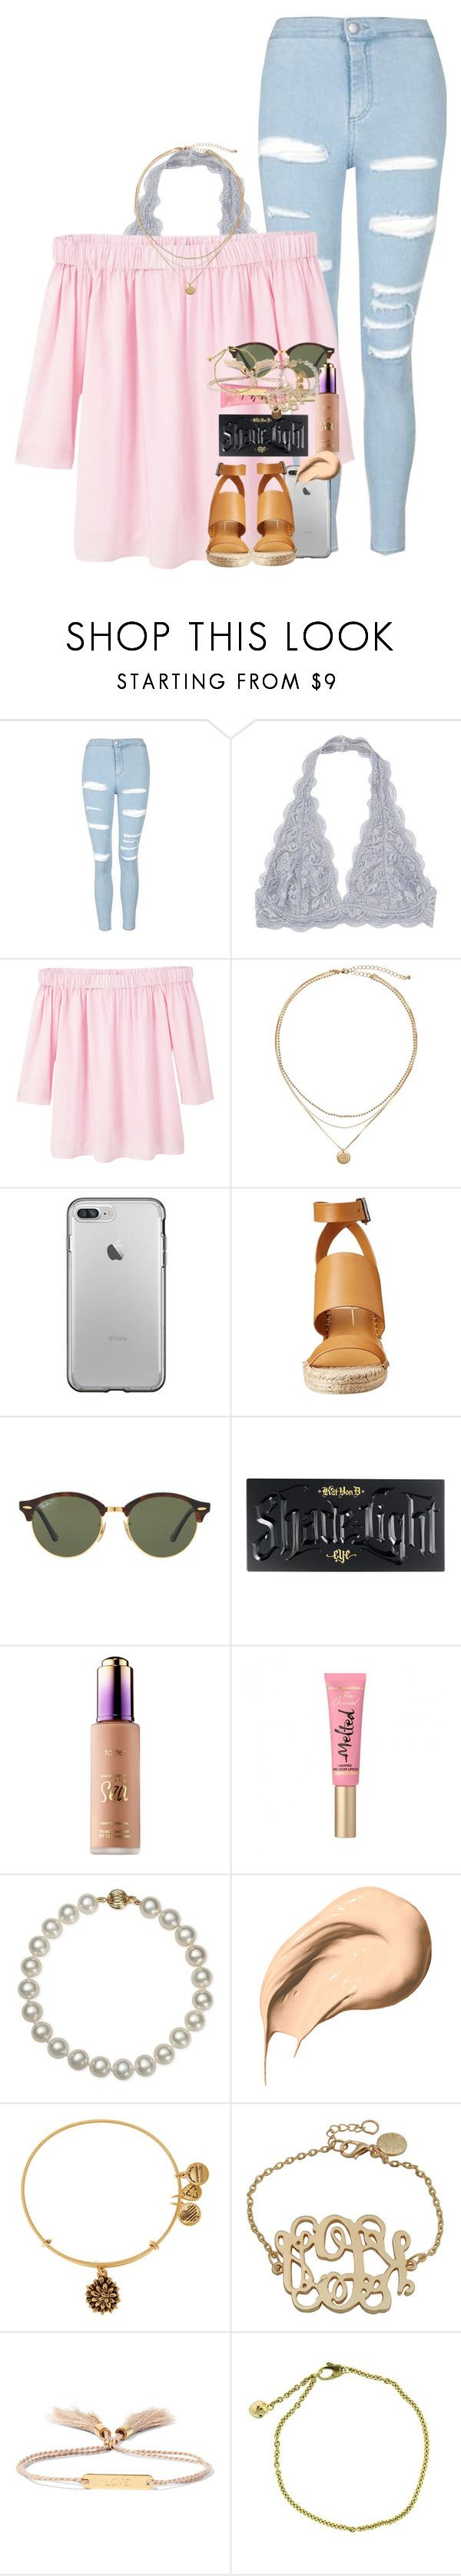 """""""life can be tough, but you have to persevere."""" by ellaswiftie13 ❤ liked on Polyvore featuring Topshop, MANGO, Dolce Vita, Ray-Ban, Kat Von D, Belle de Mer, Bobbi Brown Cosmetics, Alex and Ani, Chloé and Cartier"""